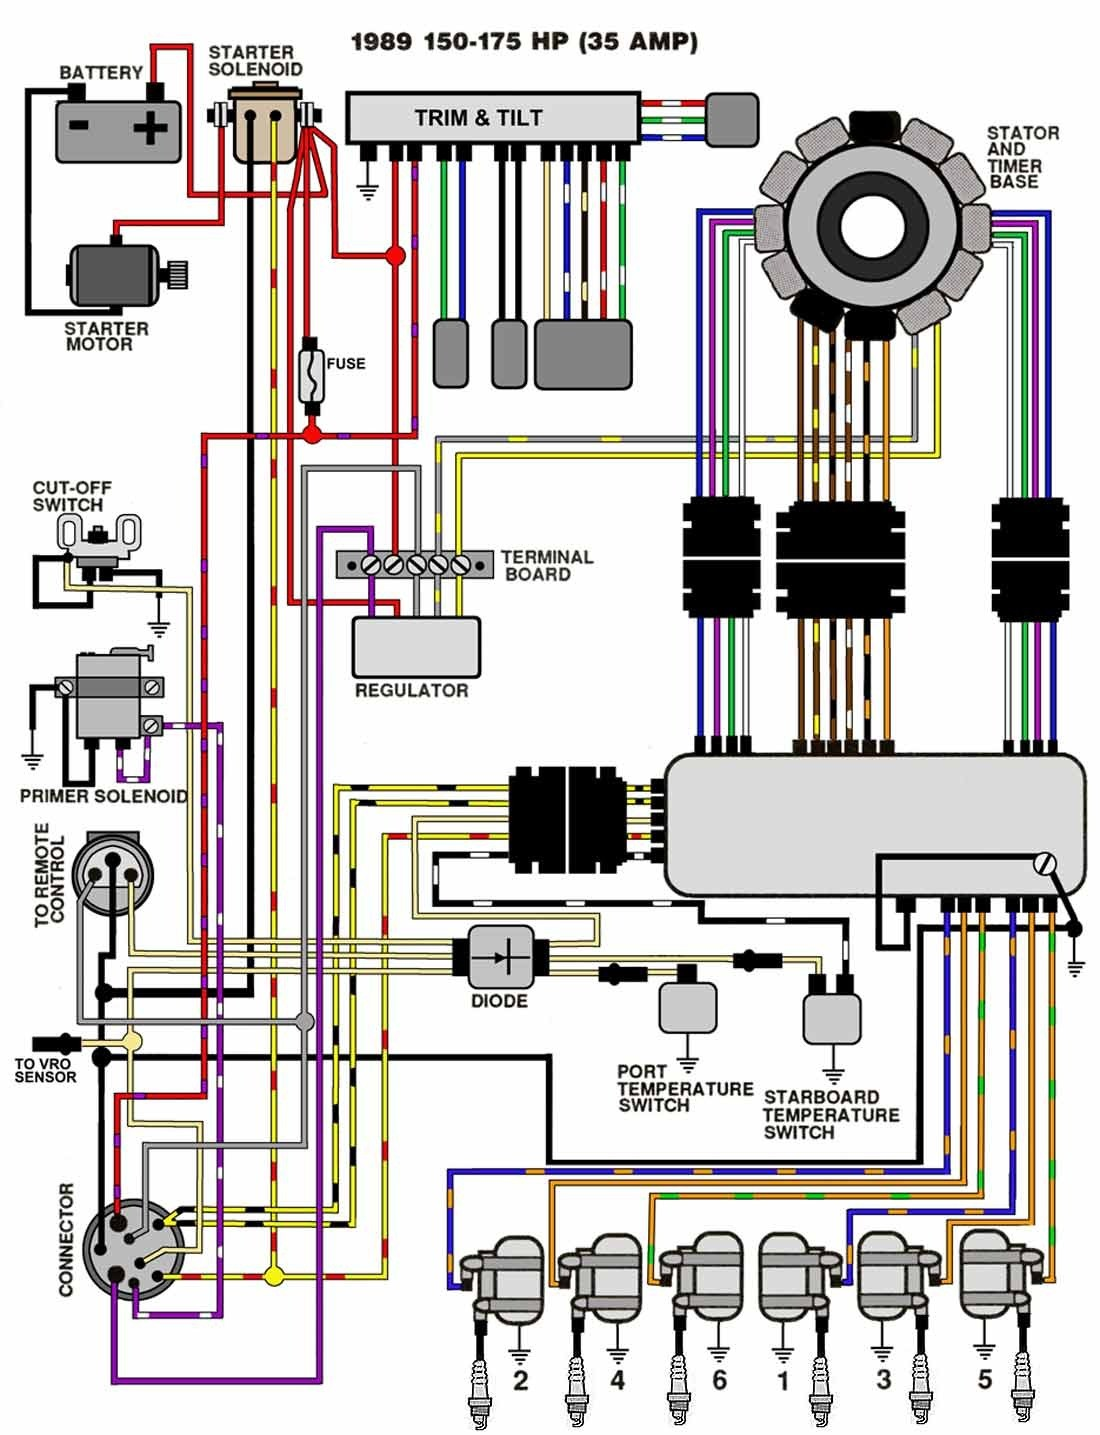 Wiring Diagram Yamaha 150 4 Stroke | New Wiring Resources 2019 on